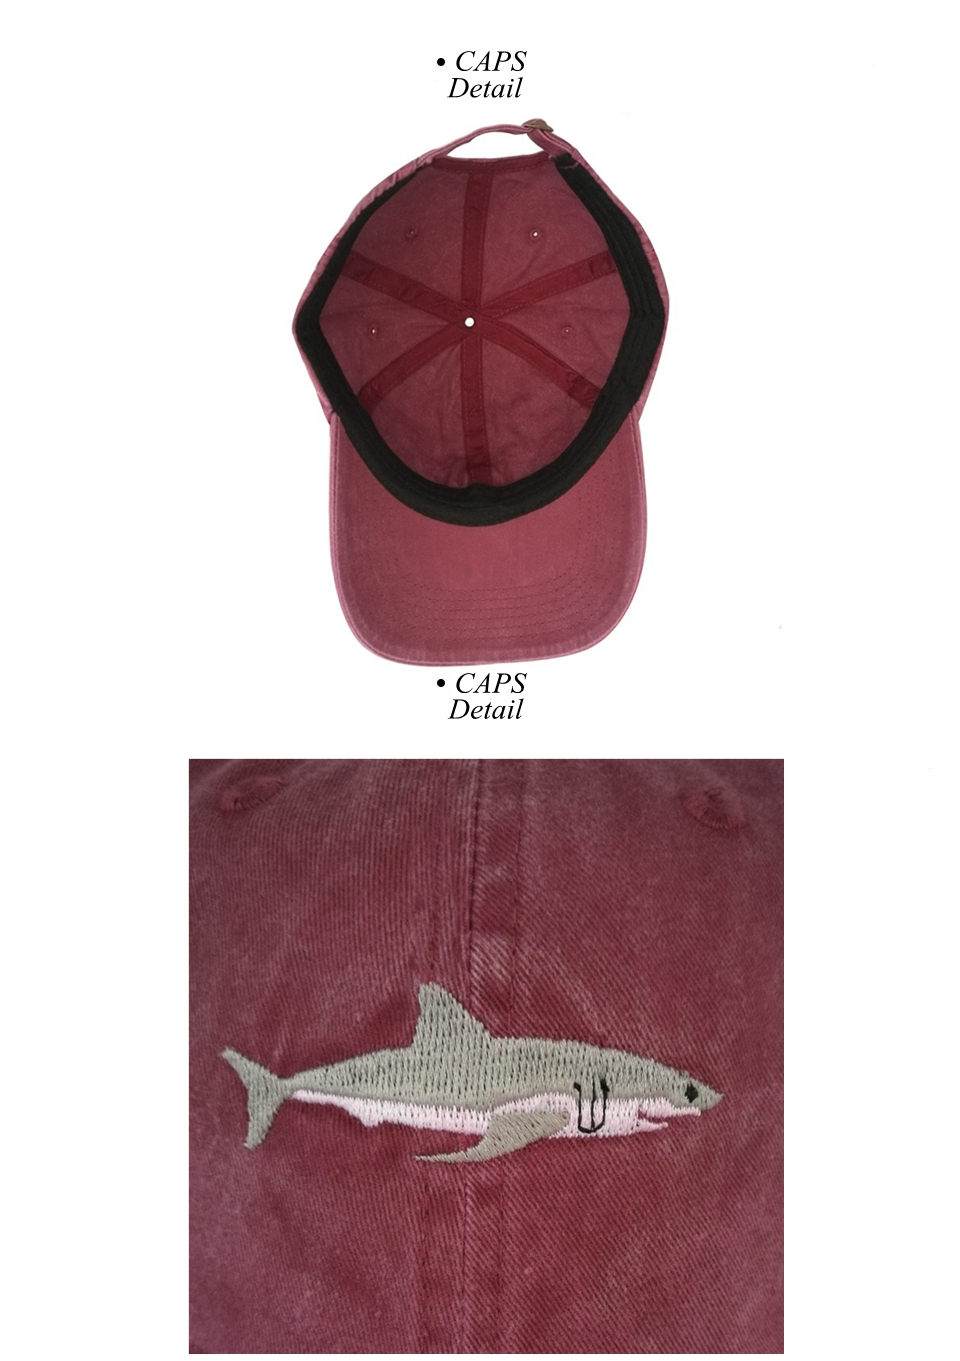 "Shark Cap"" Shark Snapback Cap for Men/Women 6"